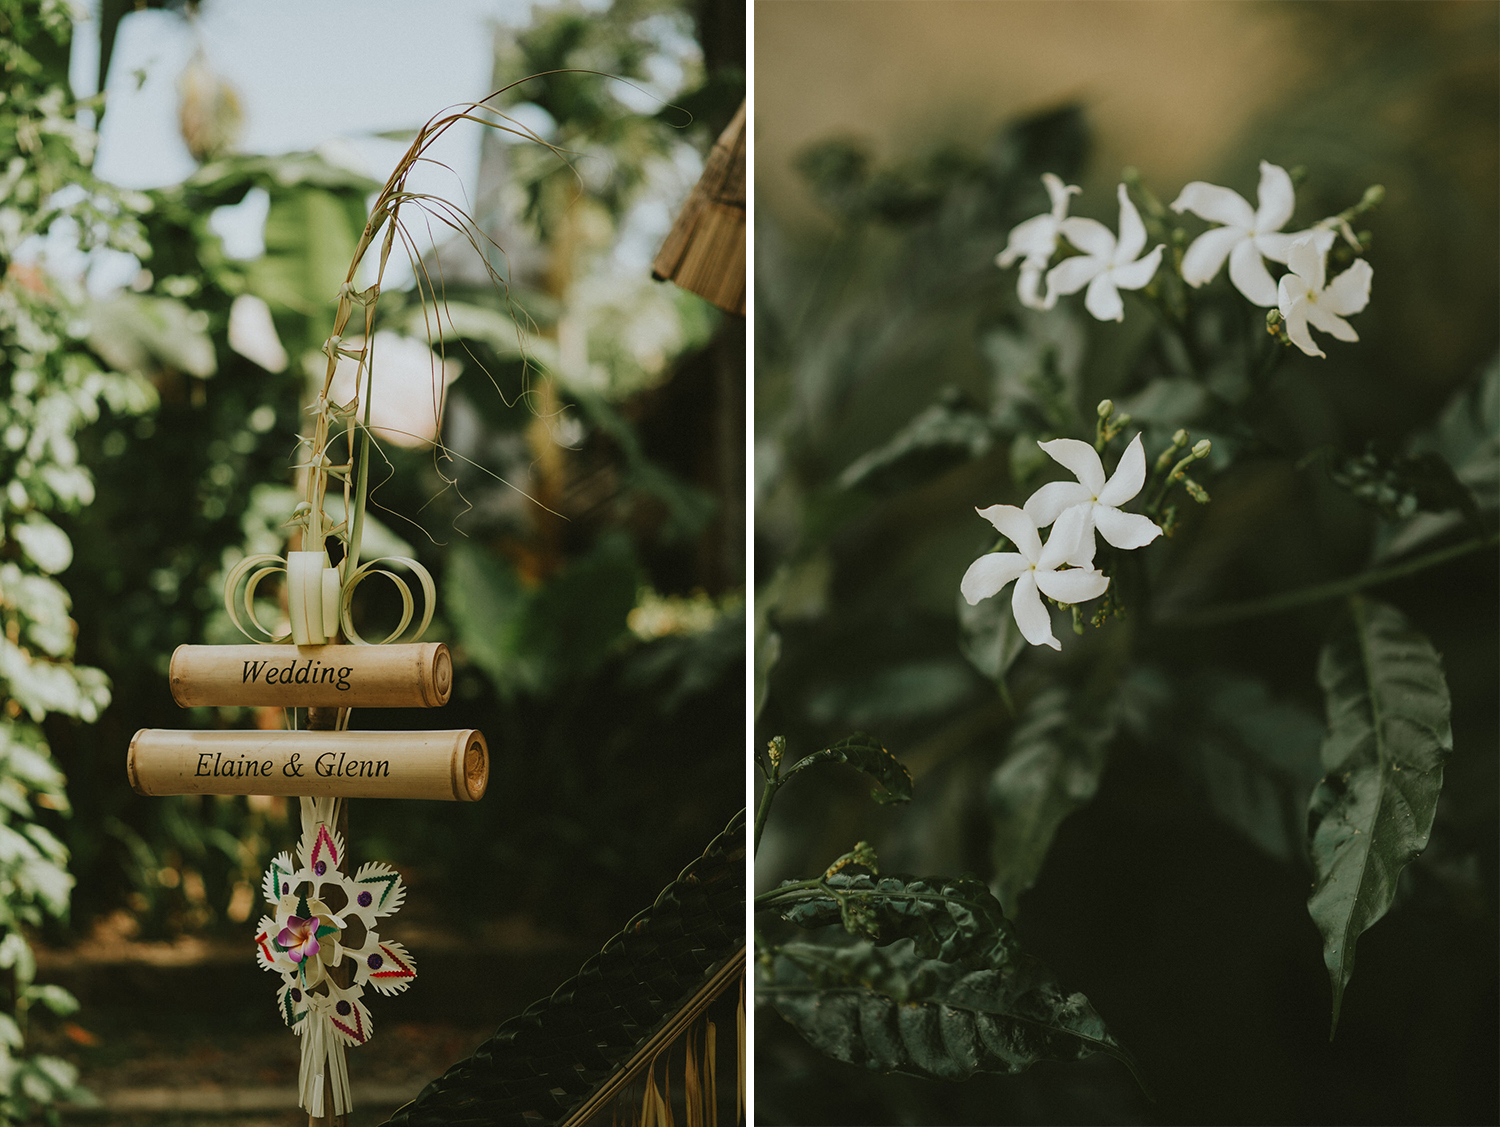 bali-wedding-ubud-wedding-wedding-destination-diktatphotography-kadek-artayasa-elaine-and-glenn-005